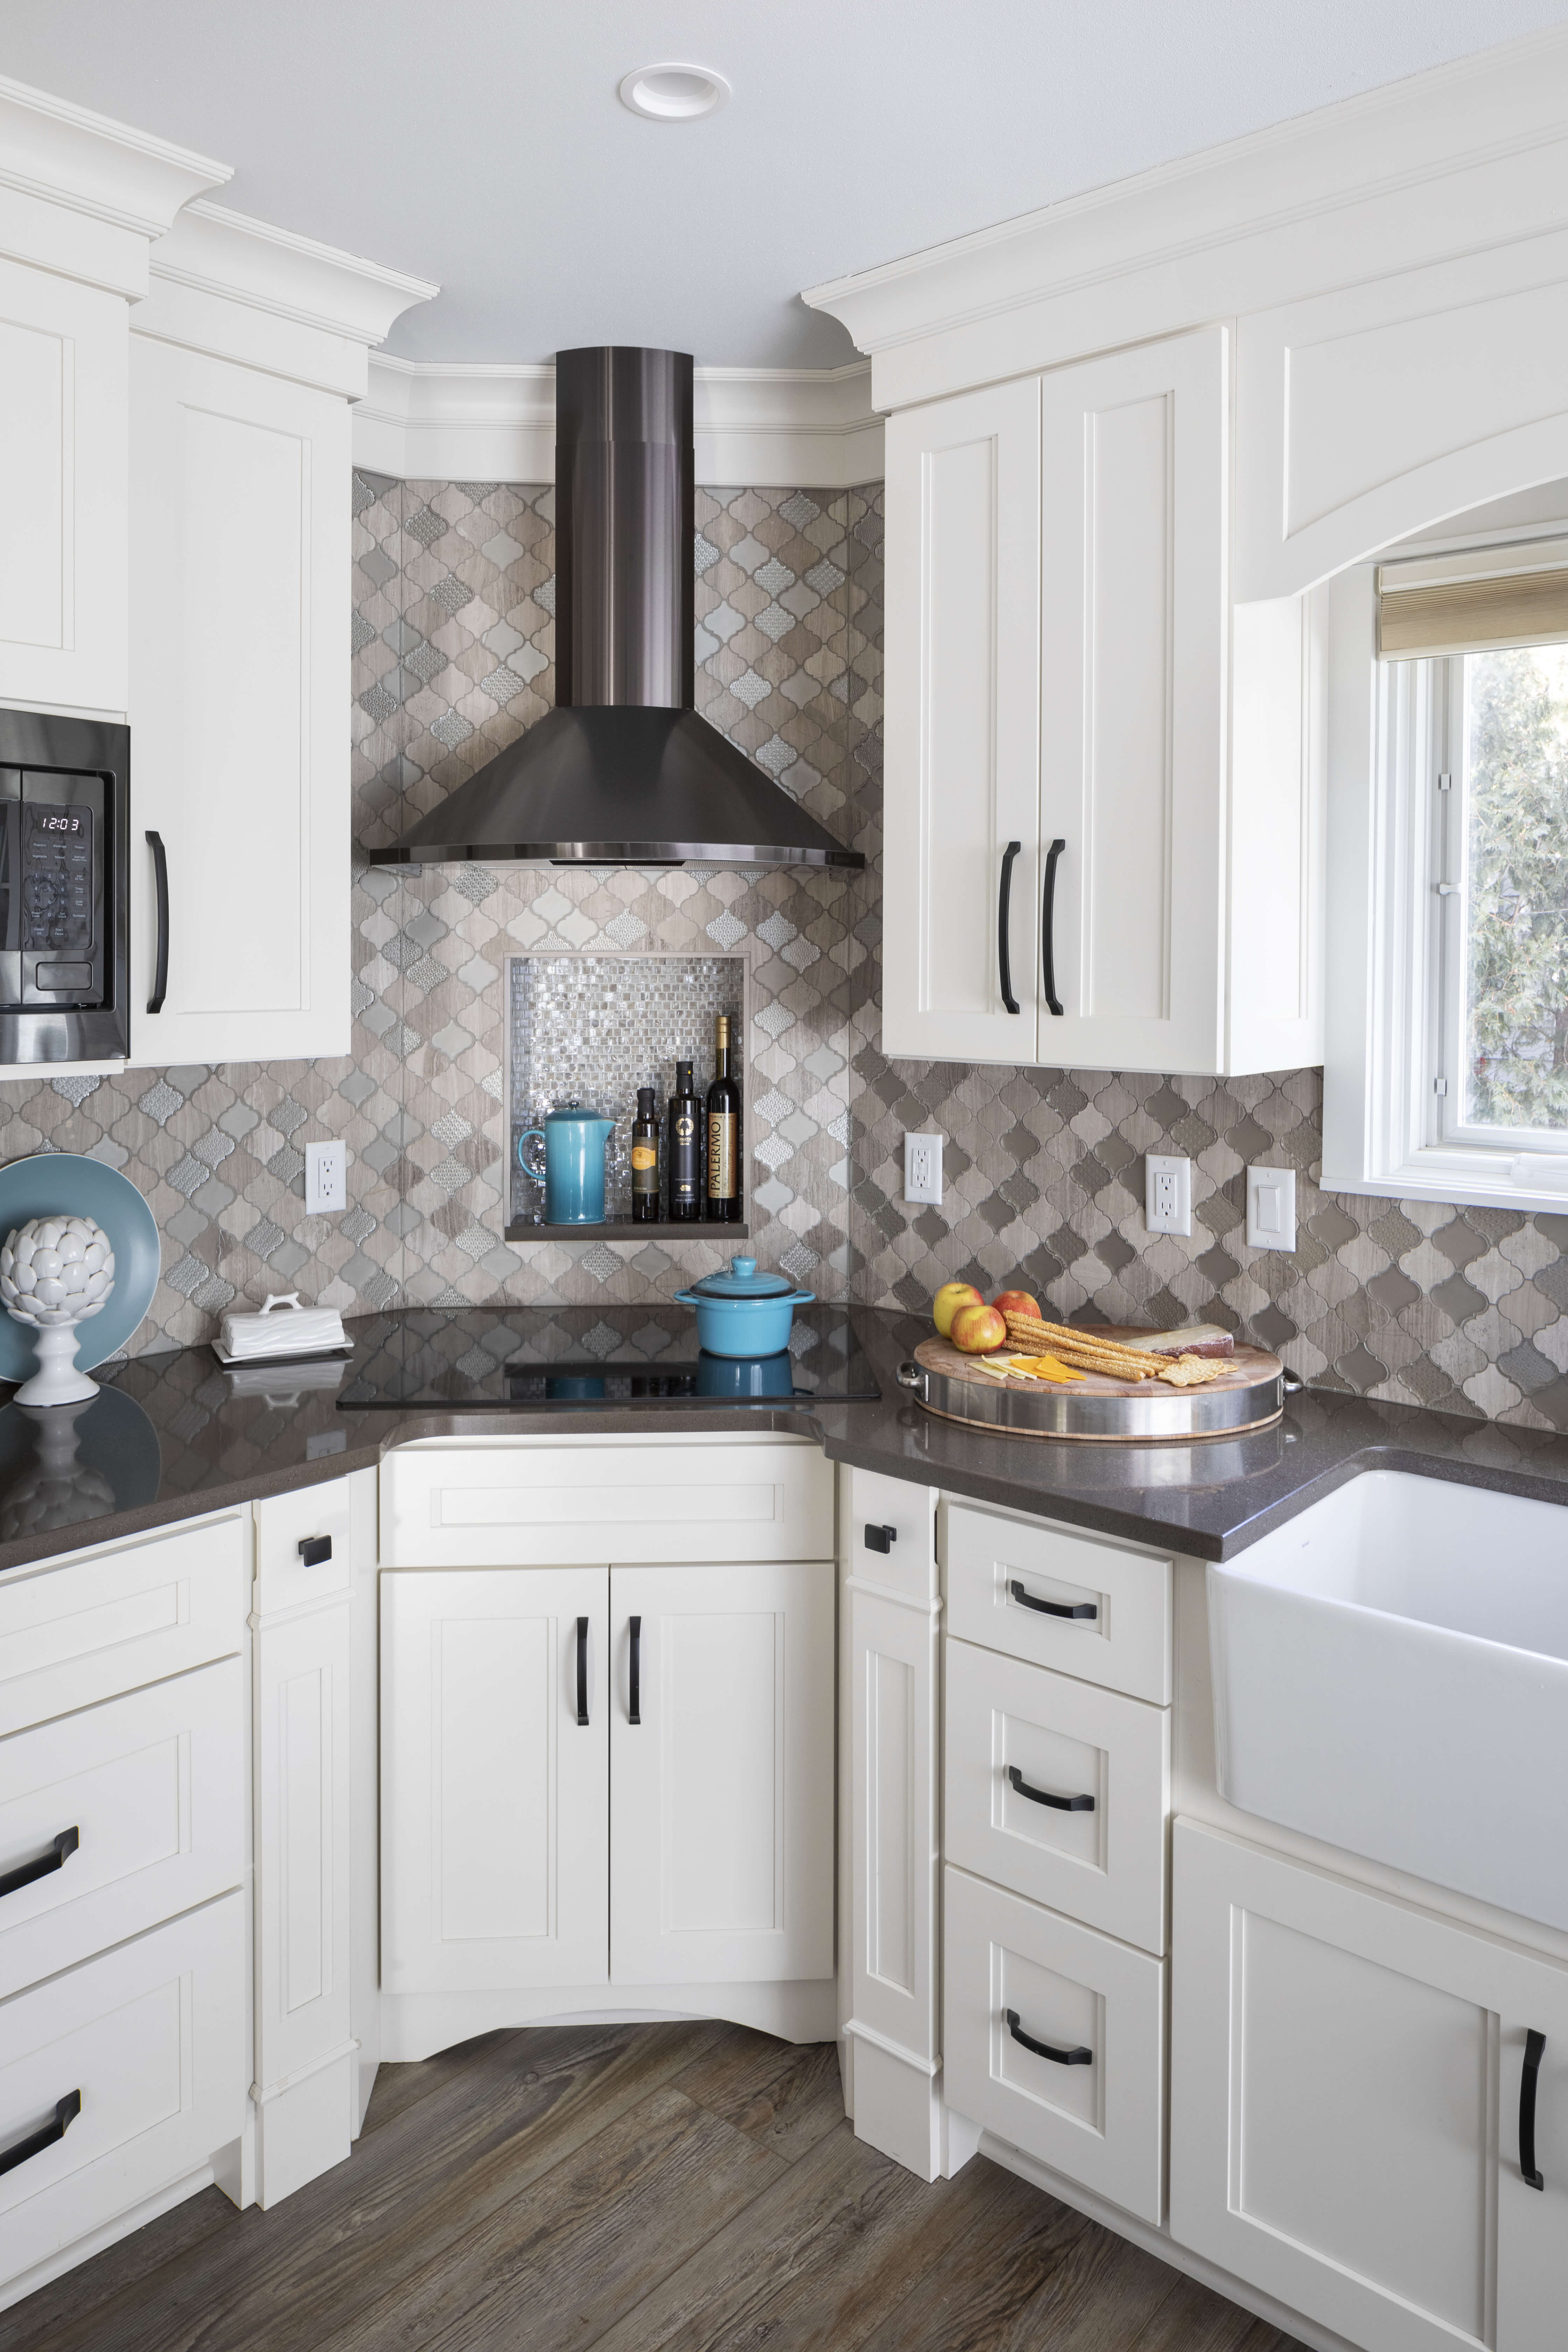 A kitchen remodel with a corner range that is tucked back.